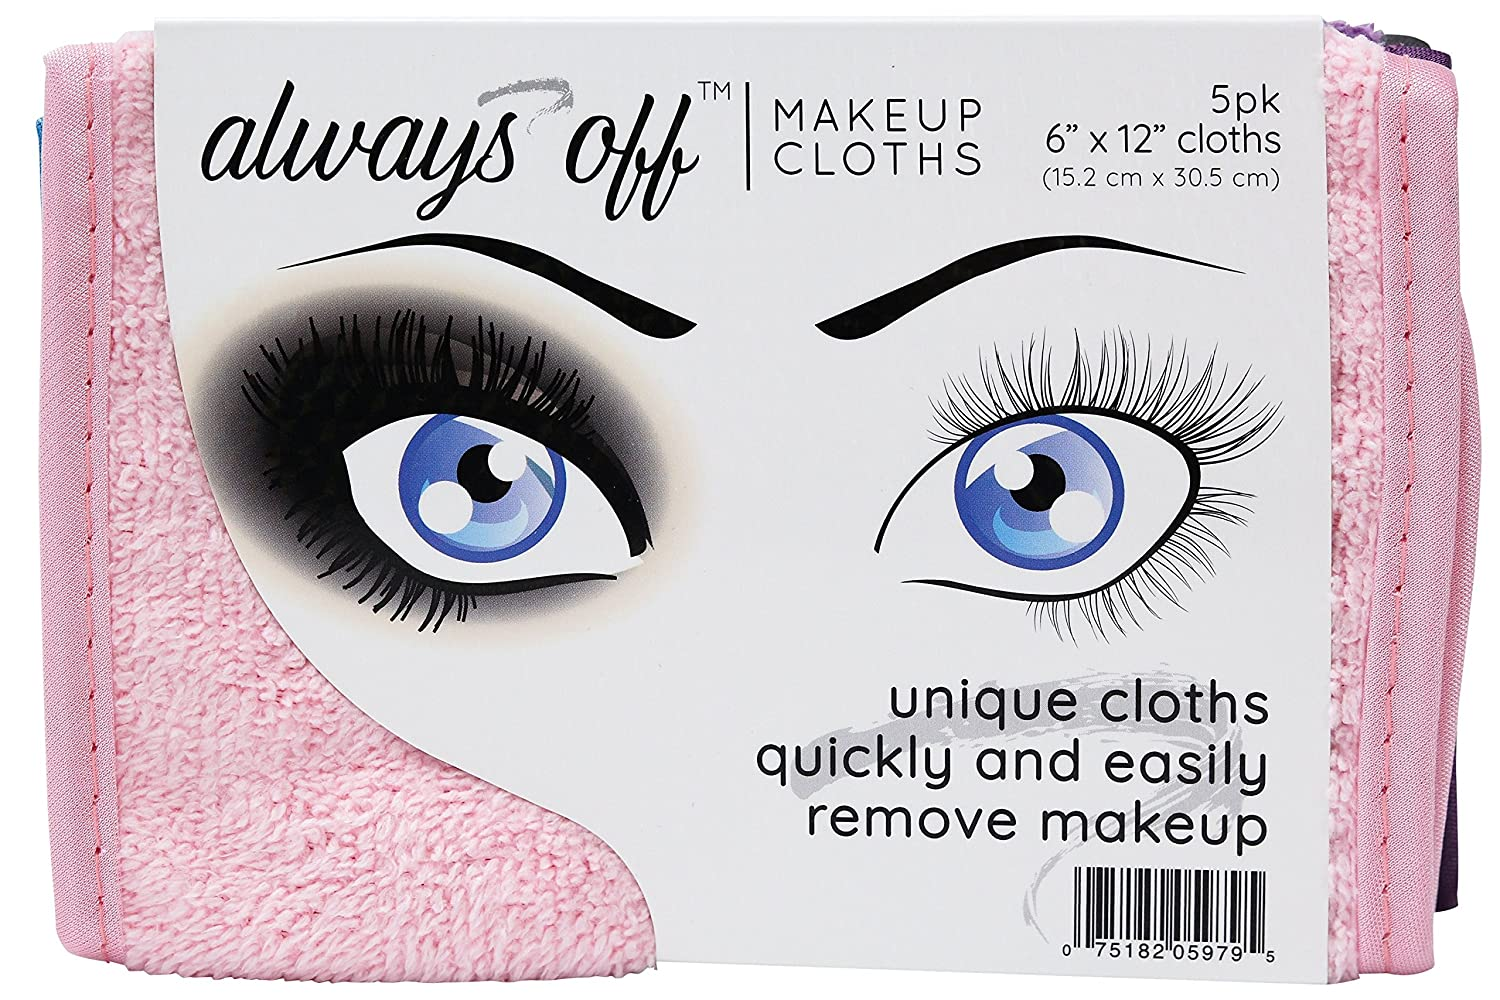 ST 597901 Always Off Makeup Remover Cloths 6 Inch x 12 Inch Assorted 5 Pack